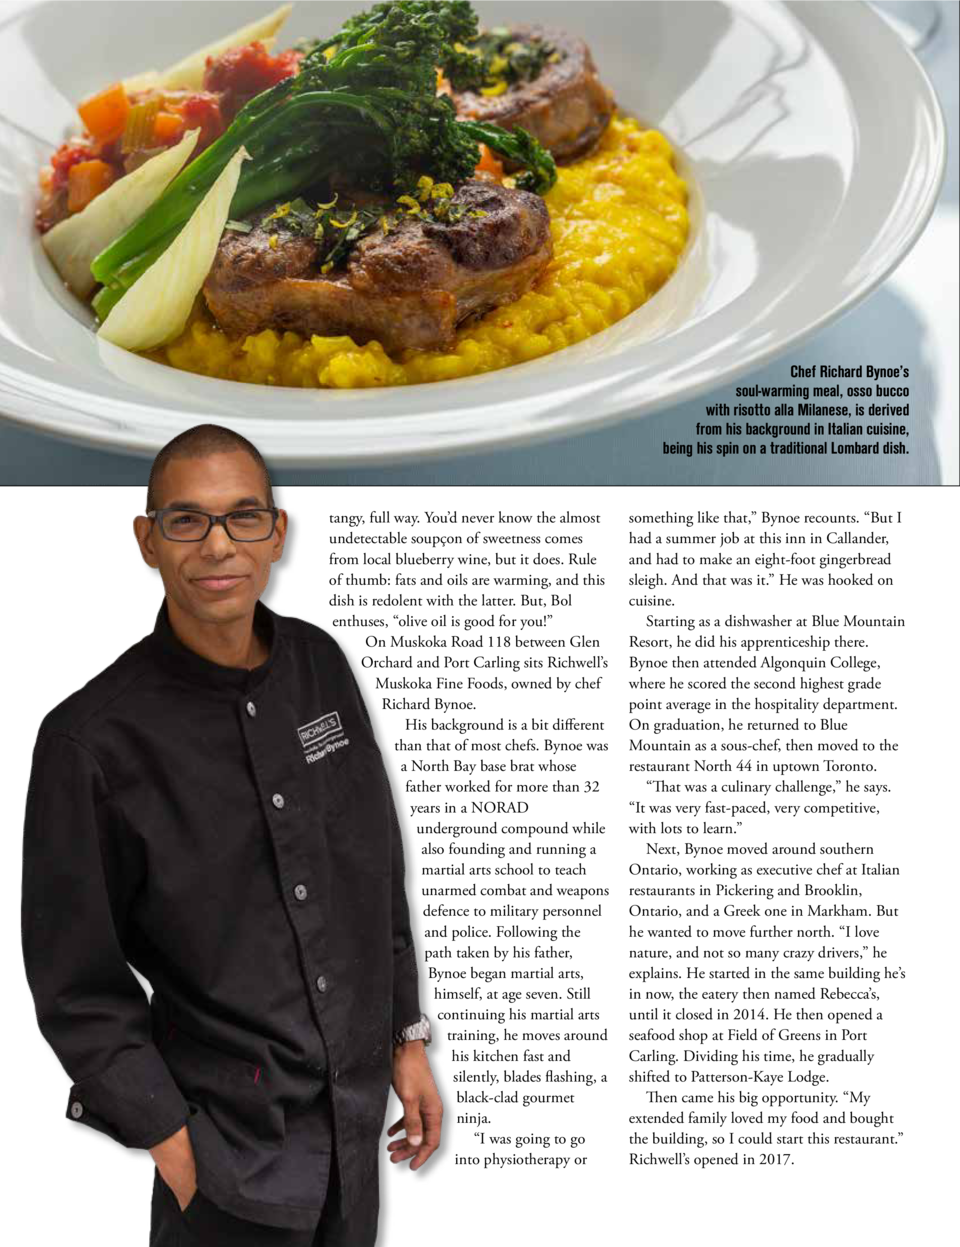 Chef Richard Bynoe   s soul-warming meal, osso bucco with risotto alla Milanese, is derived from his background in Italian...